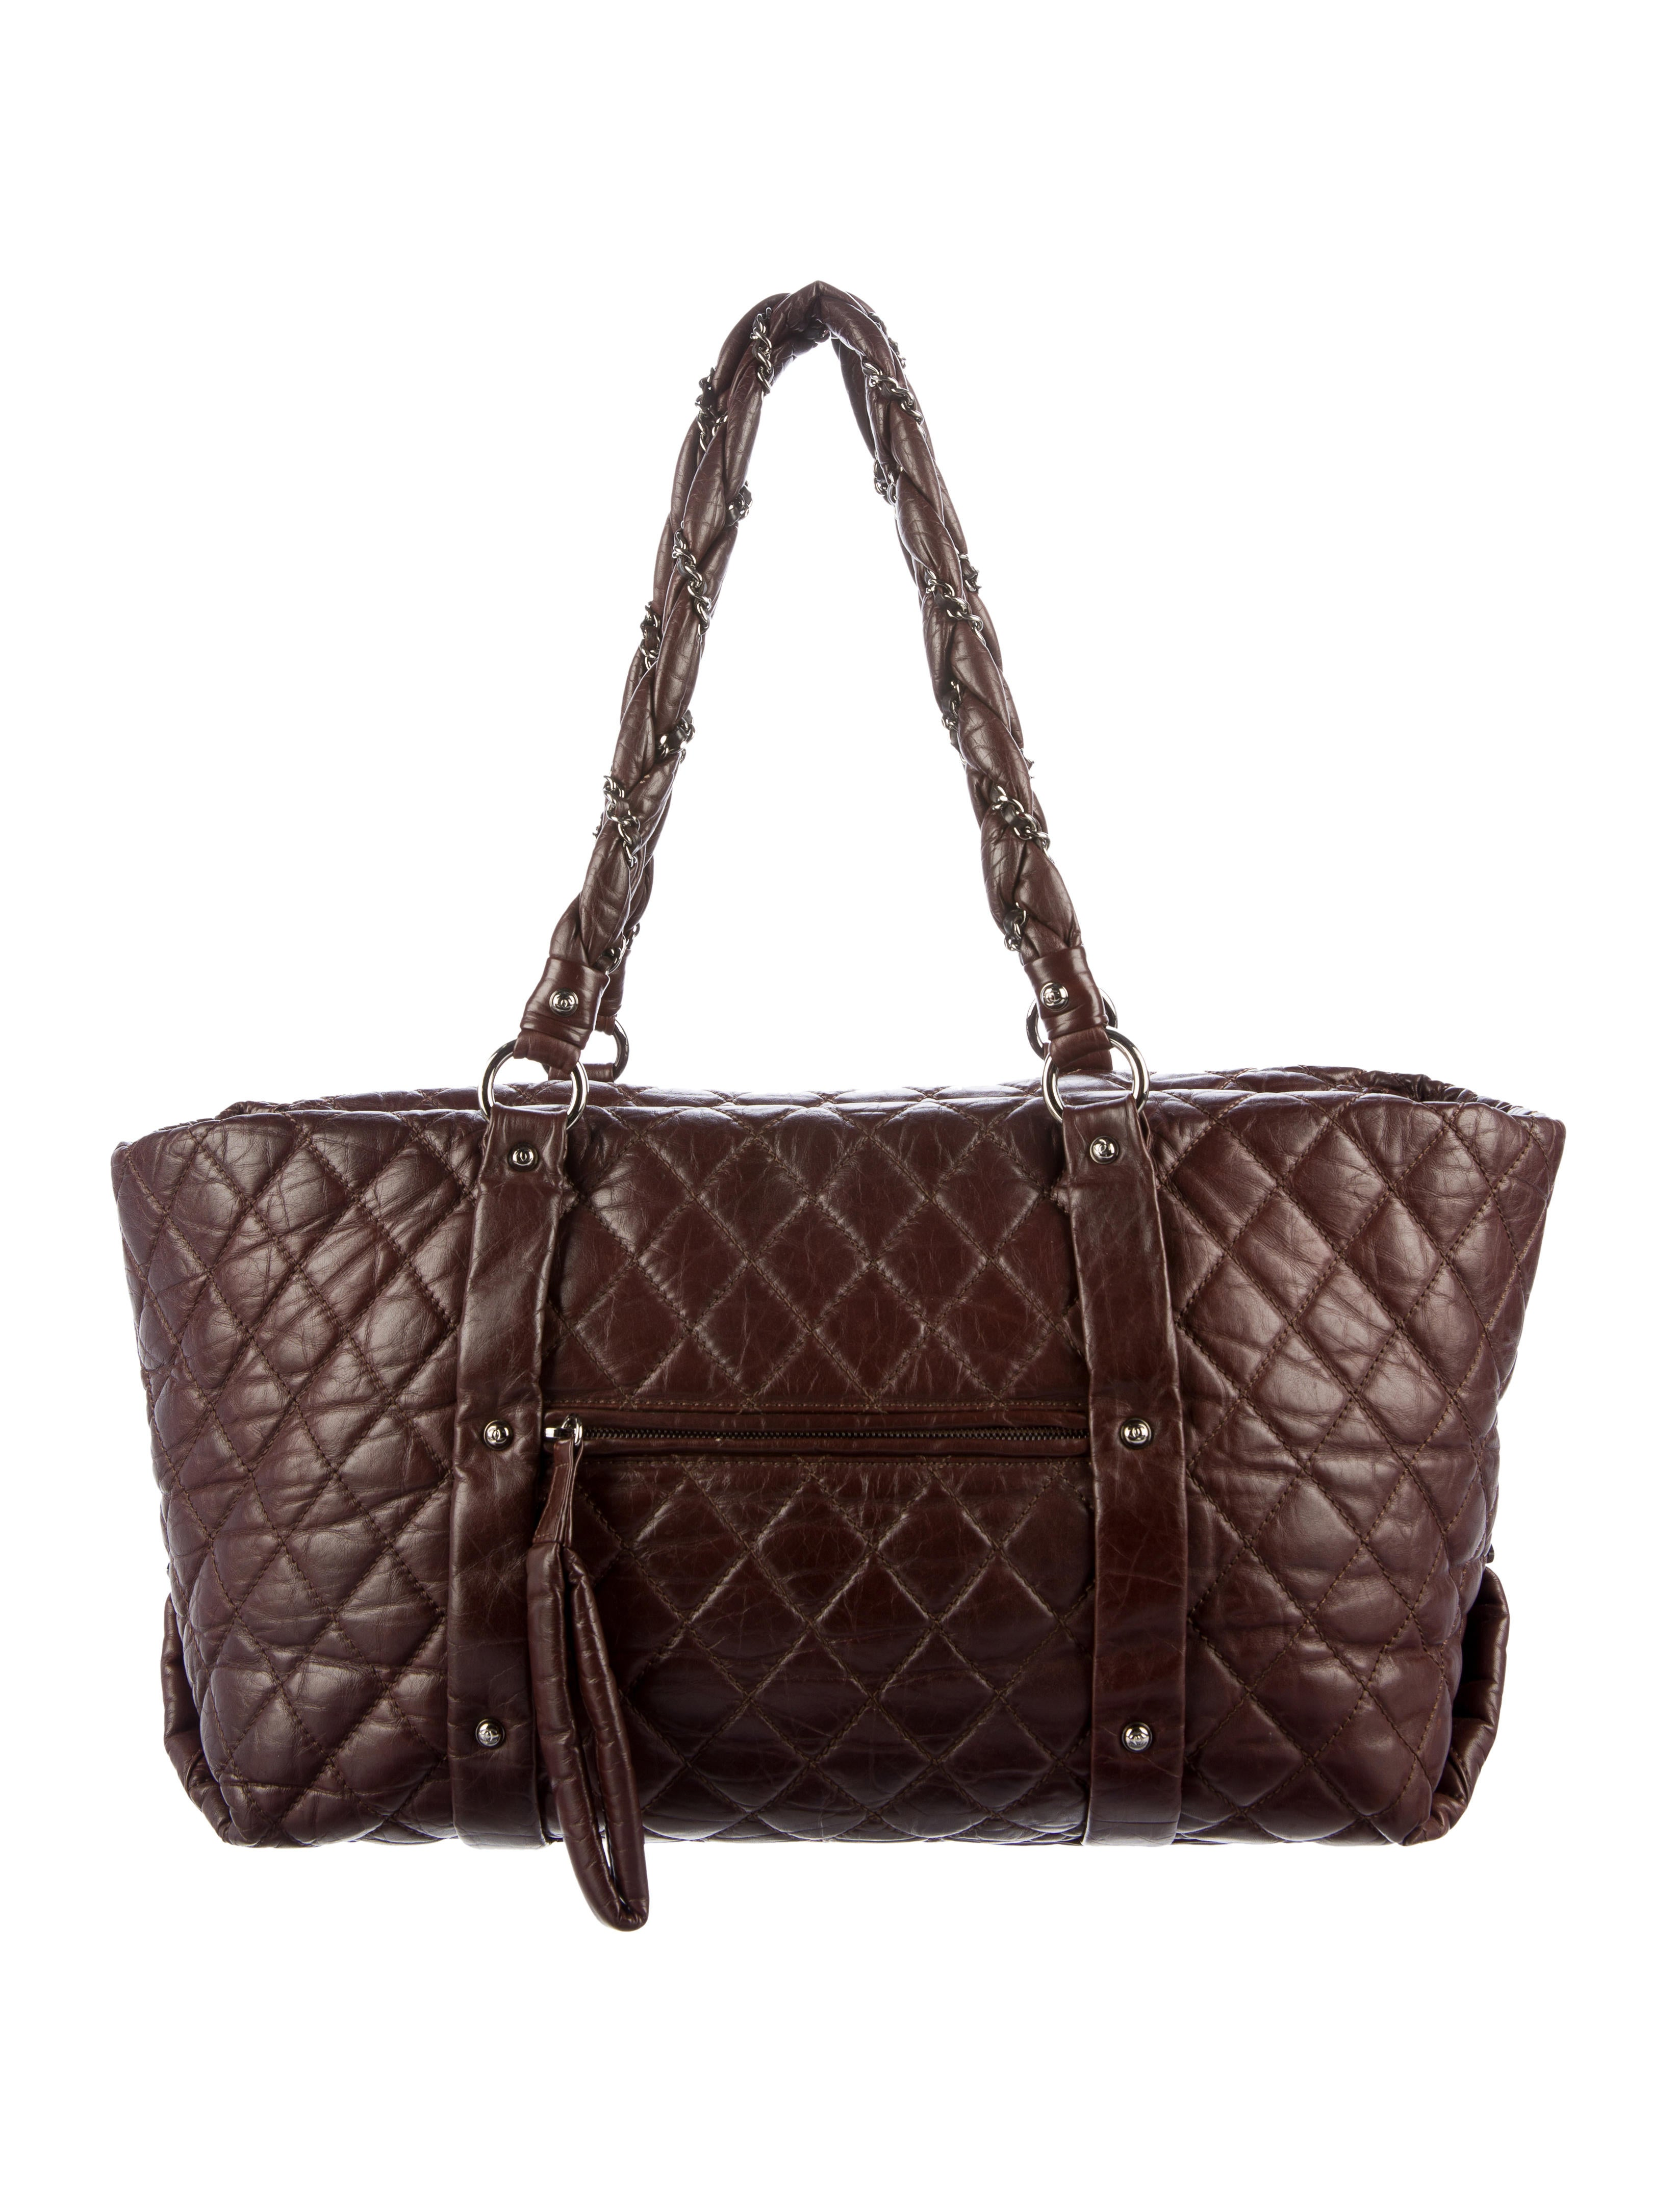 8fc5cb0f1598 Chanel Large Quilted Lady Braid Tote - Handbags - CHA142195 | The ...